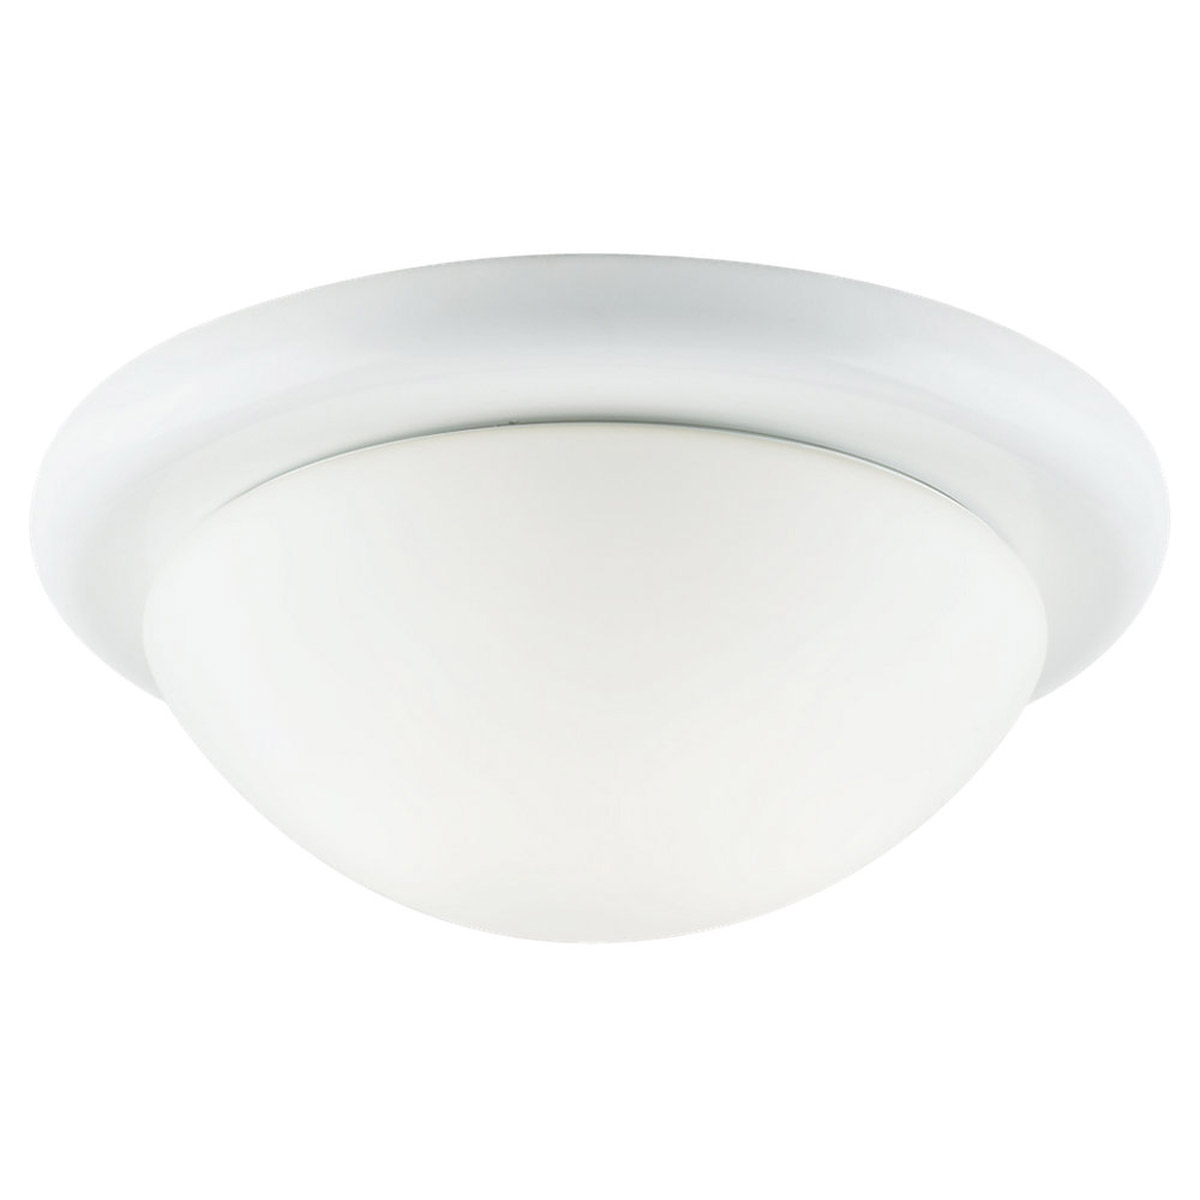 Sea Gull Lighting Twist-Lock Fitters 2 Light Flush Mount in White 53070-15